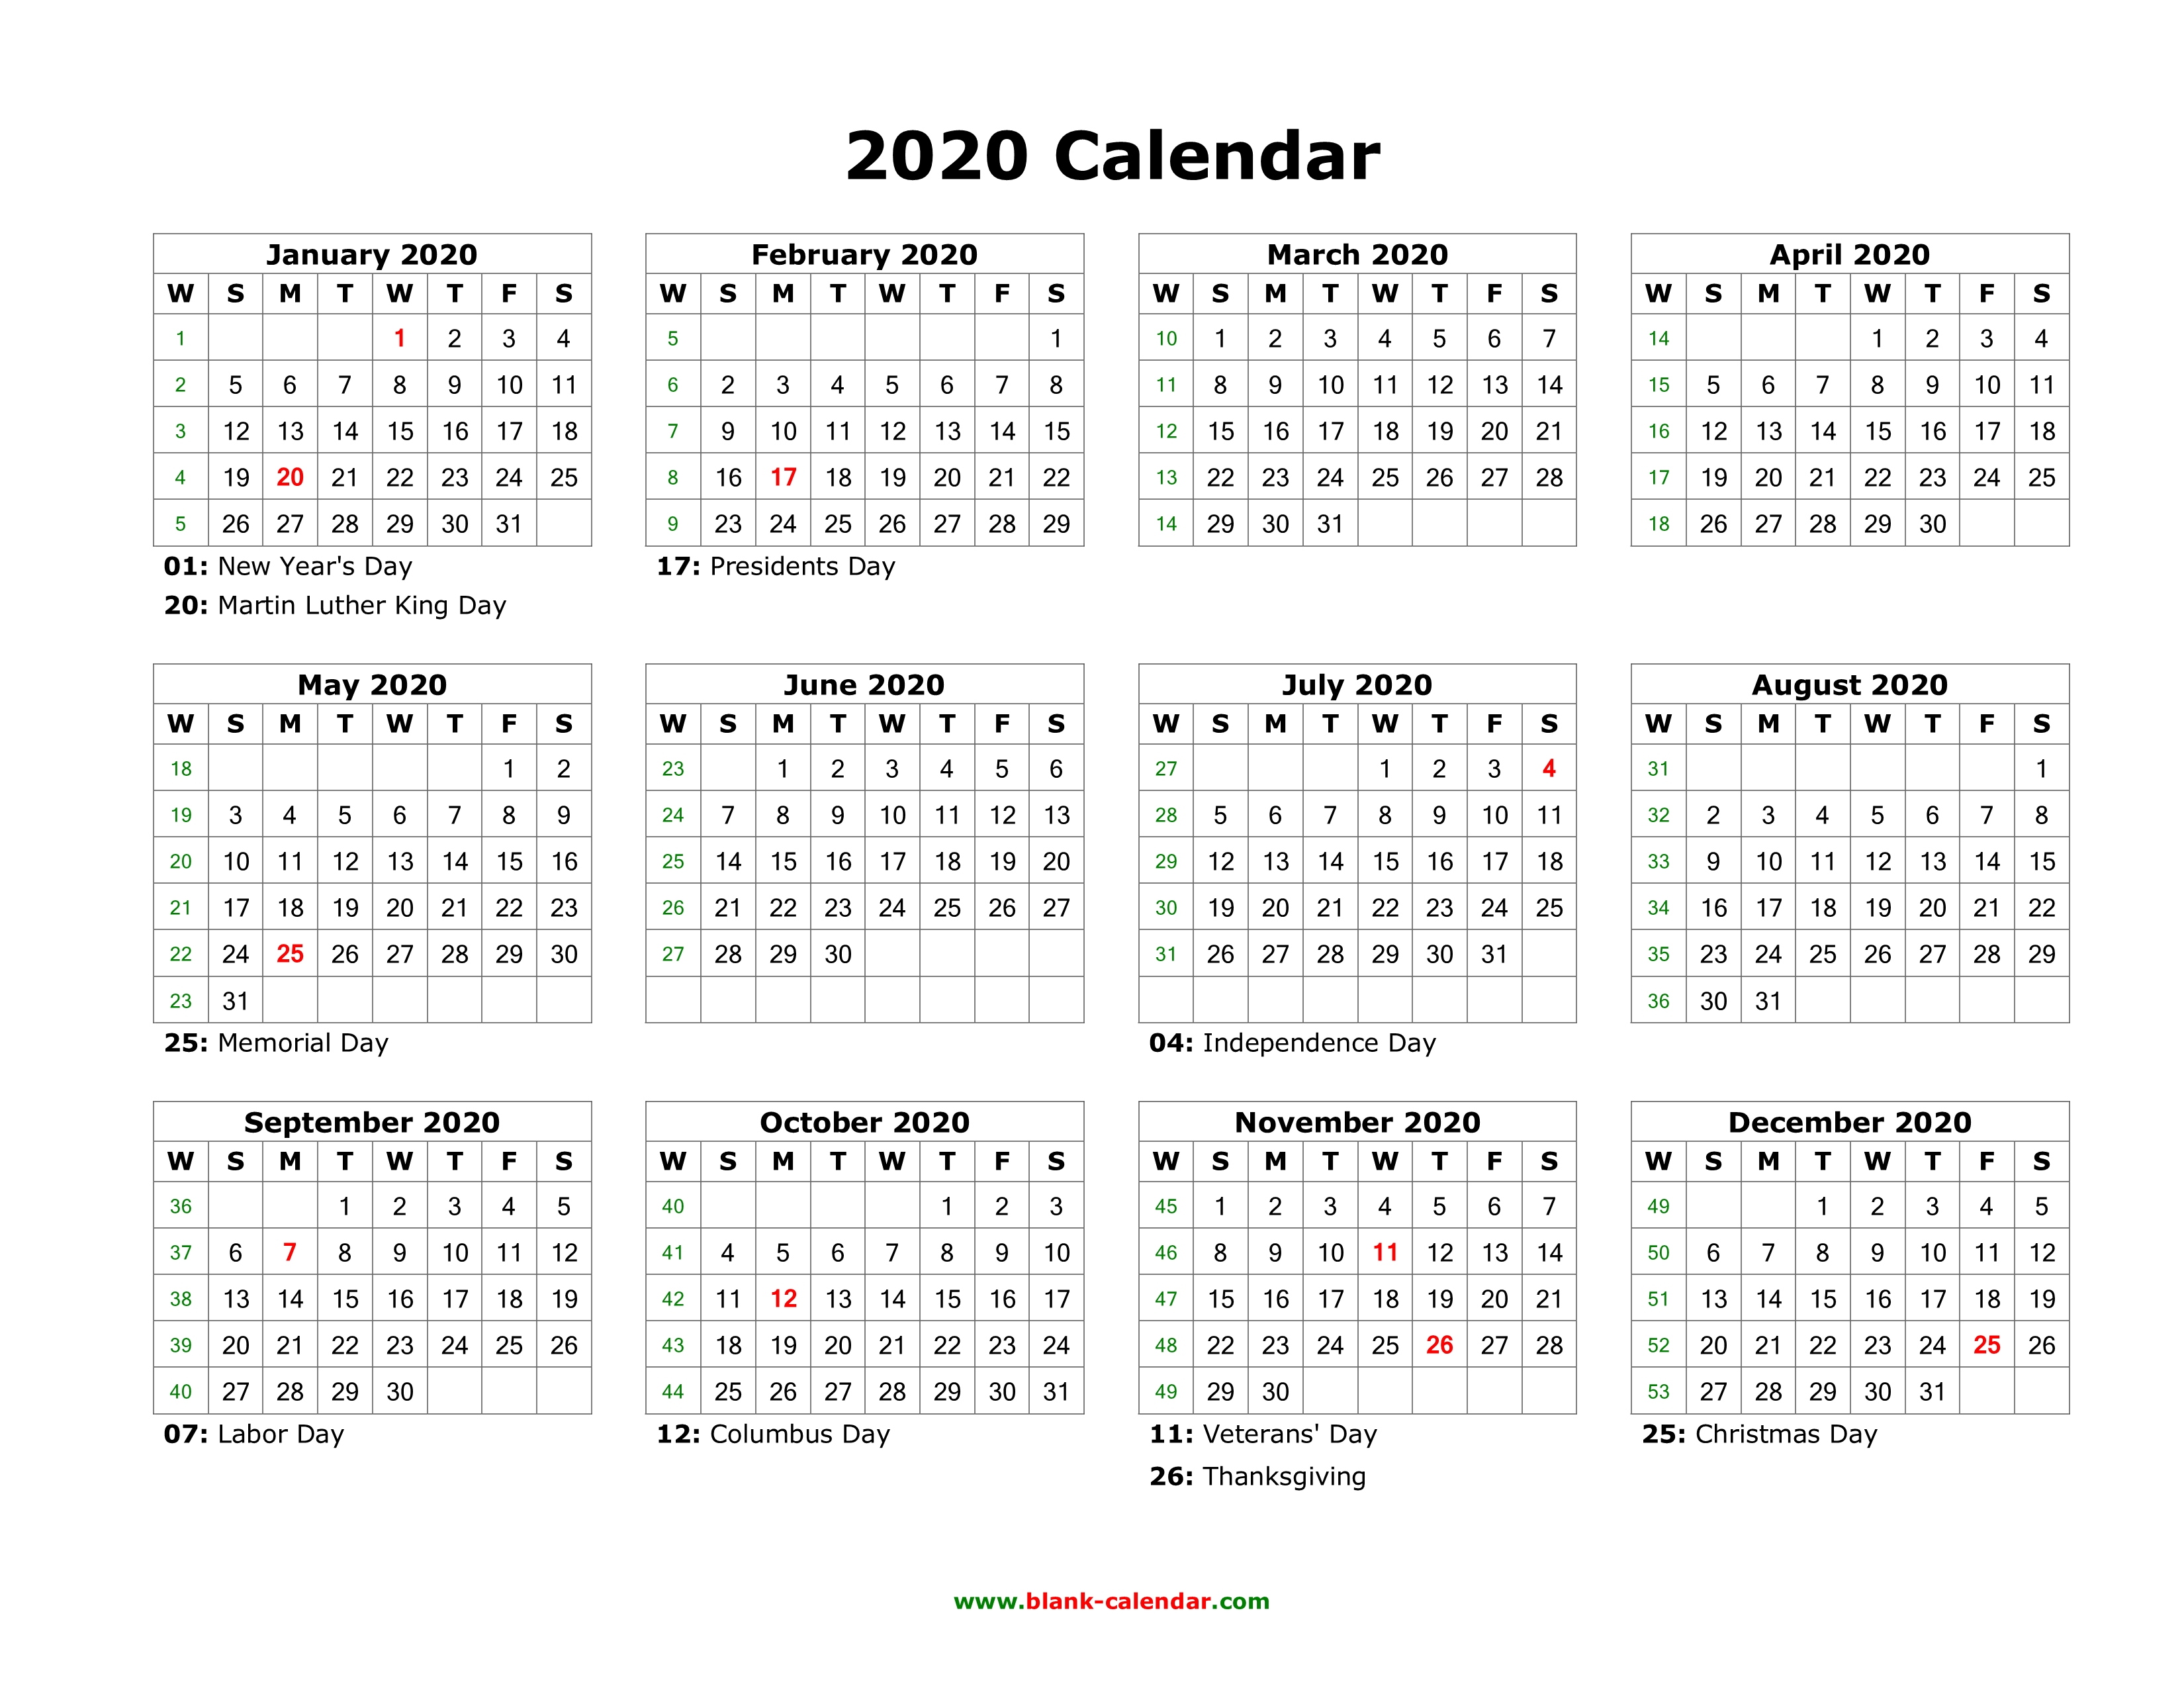 Blank Calendar 2020 | Free Download Calendar Templates throughout 2020 Calendar Printable Free With Added Oicture